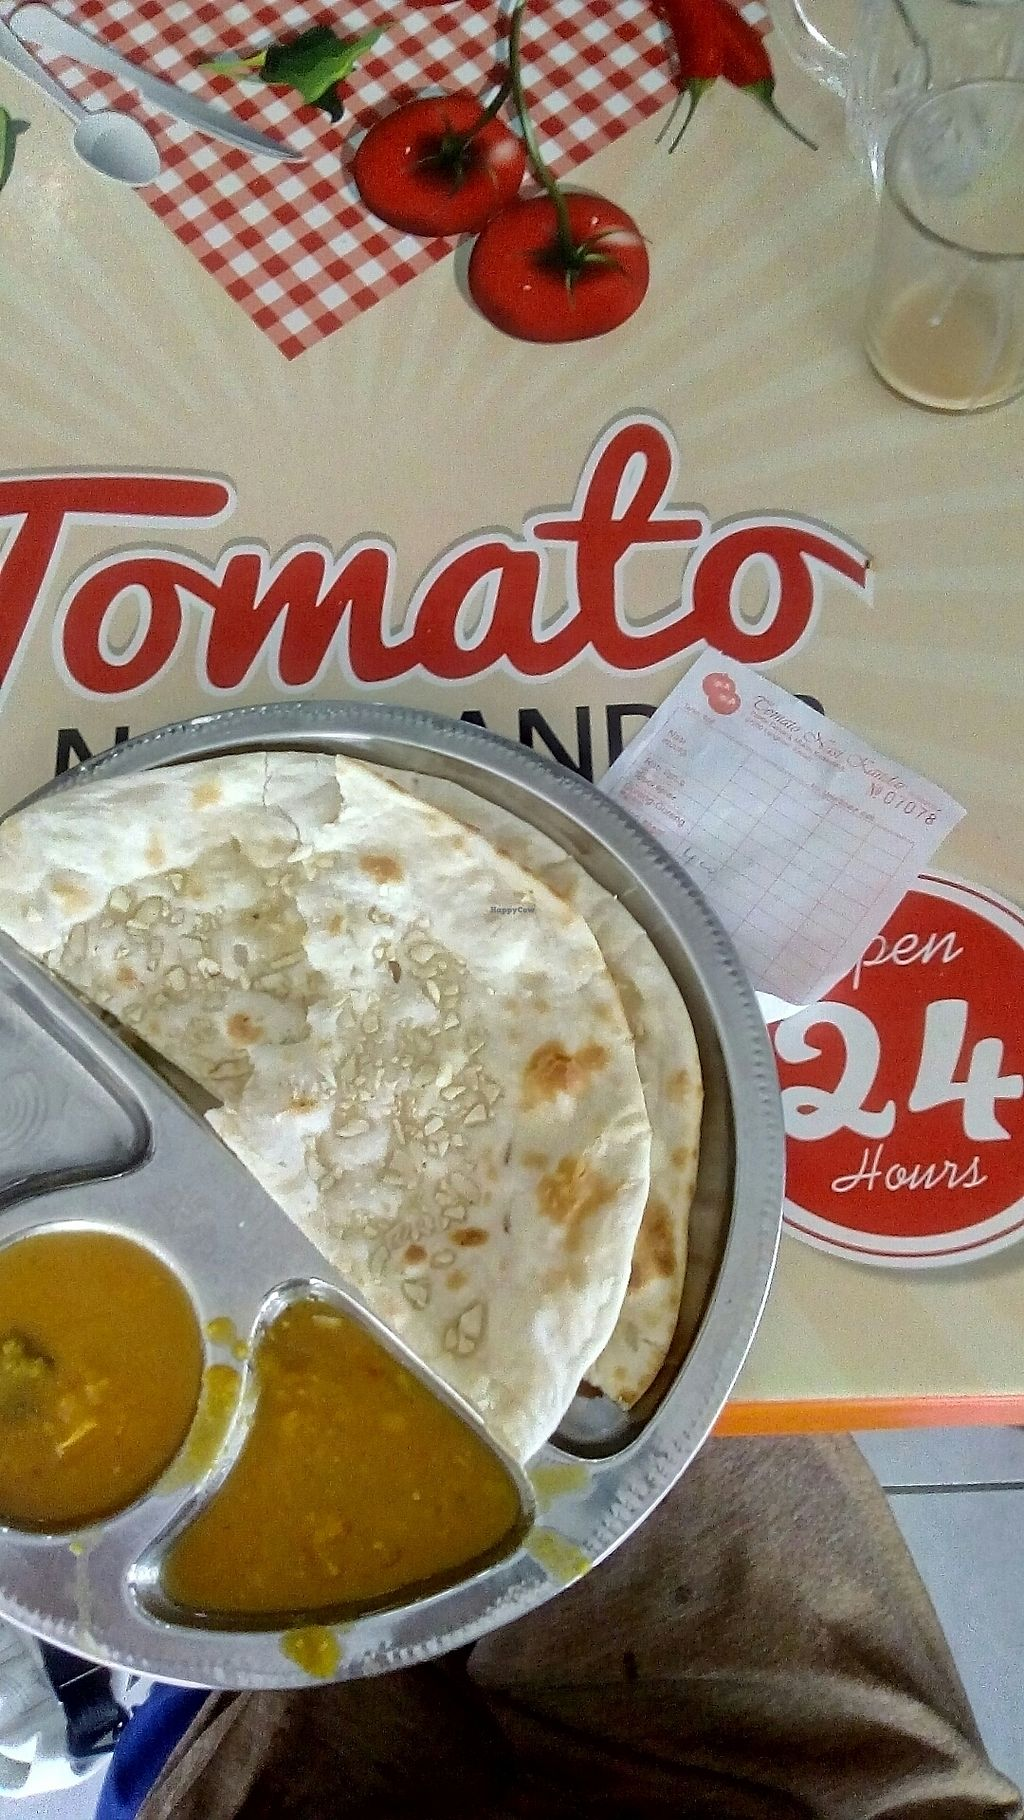 """Photo of Tomato Nasi Kandar  by <a href=""""/members/profile/u_are_brilliant"""">u_are_brilliant</a> <br/>Garlic Naan bread <br/> August 2, 2017  - <a href='/contact/abuse/image/38106/287918'>Report</a>"""